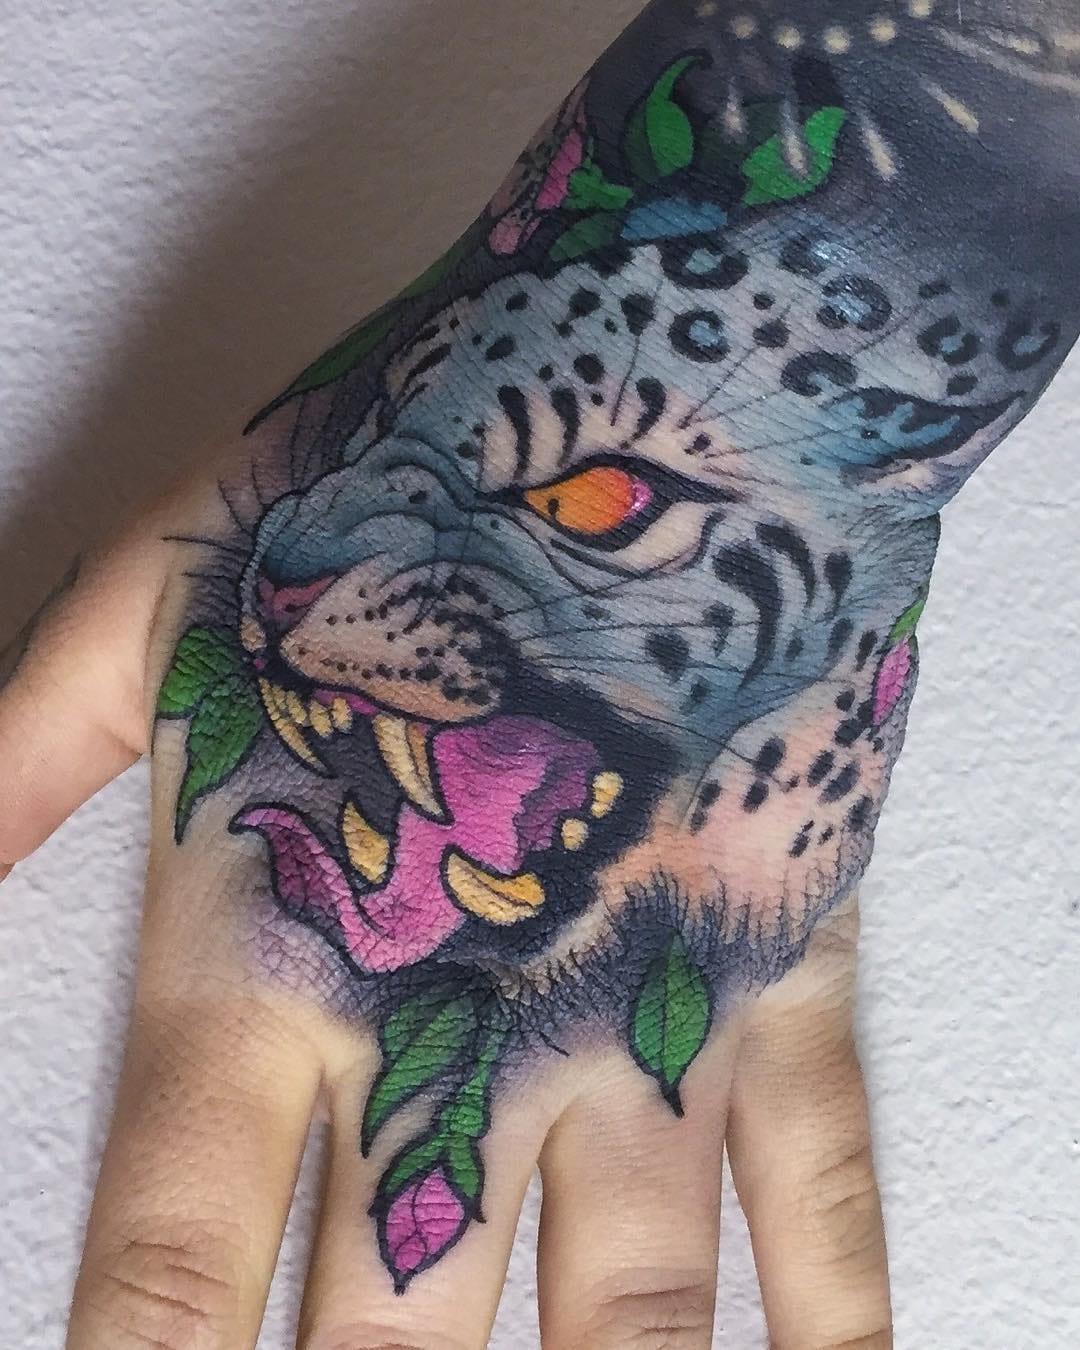 Snow Leopard Hand Tattoo by Peter Lagergren